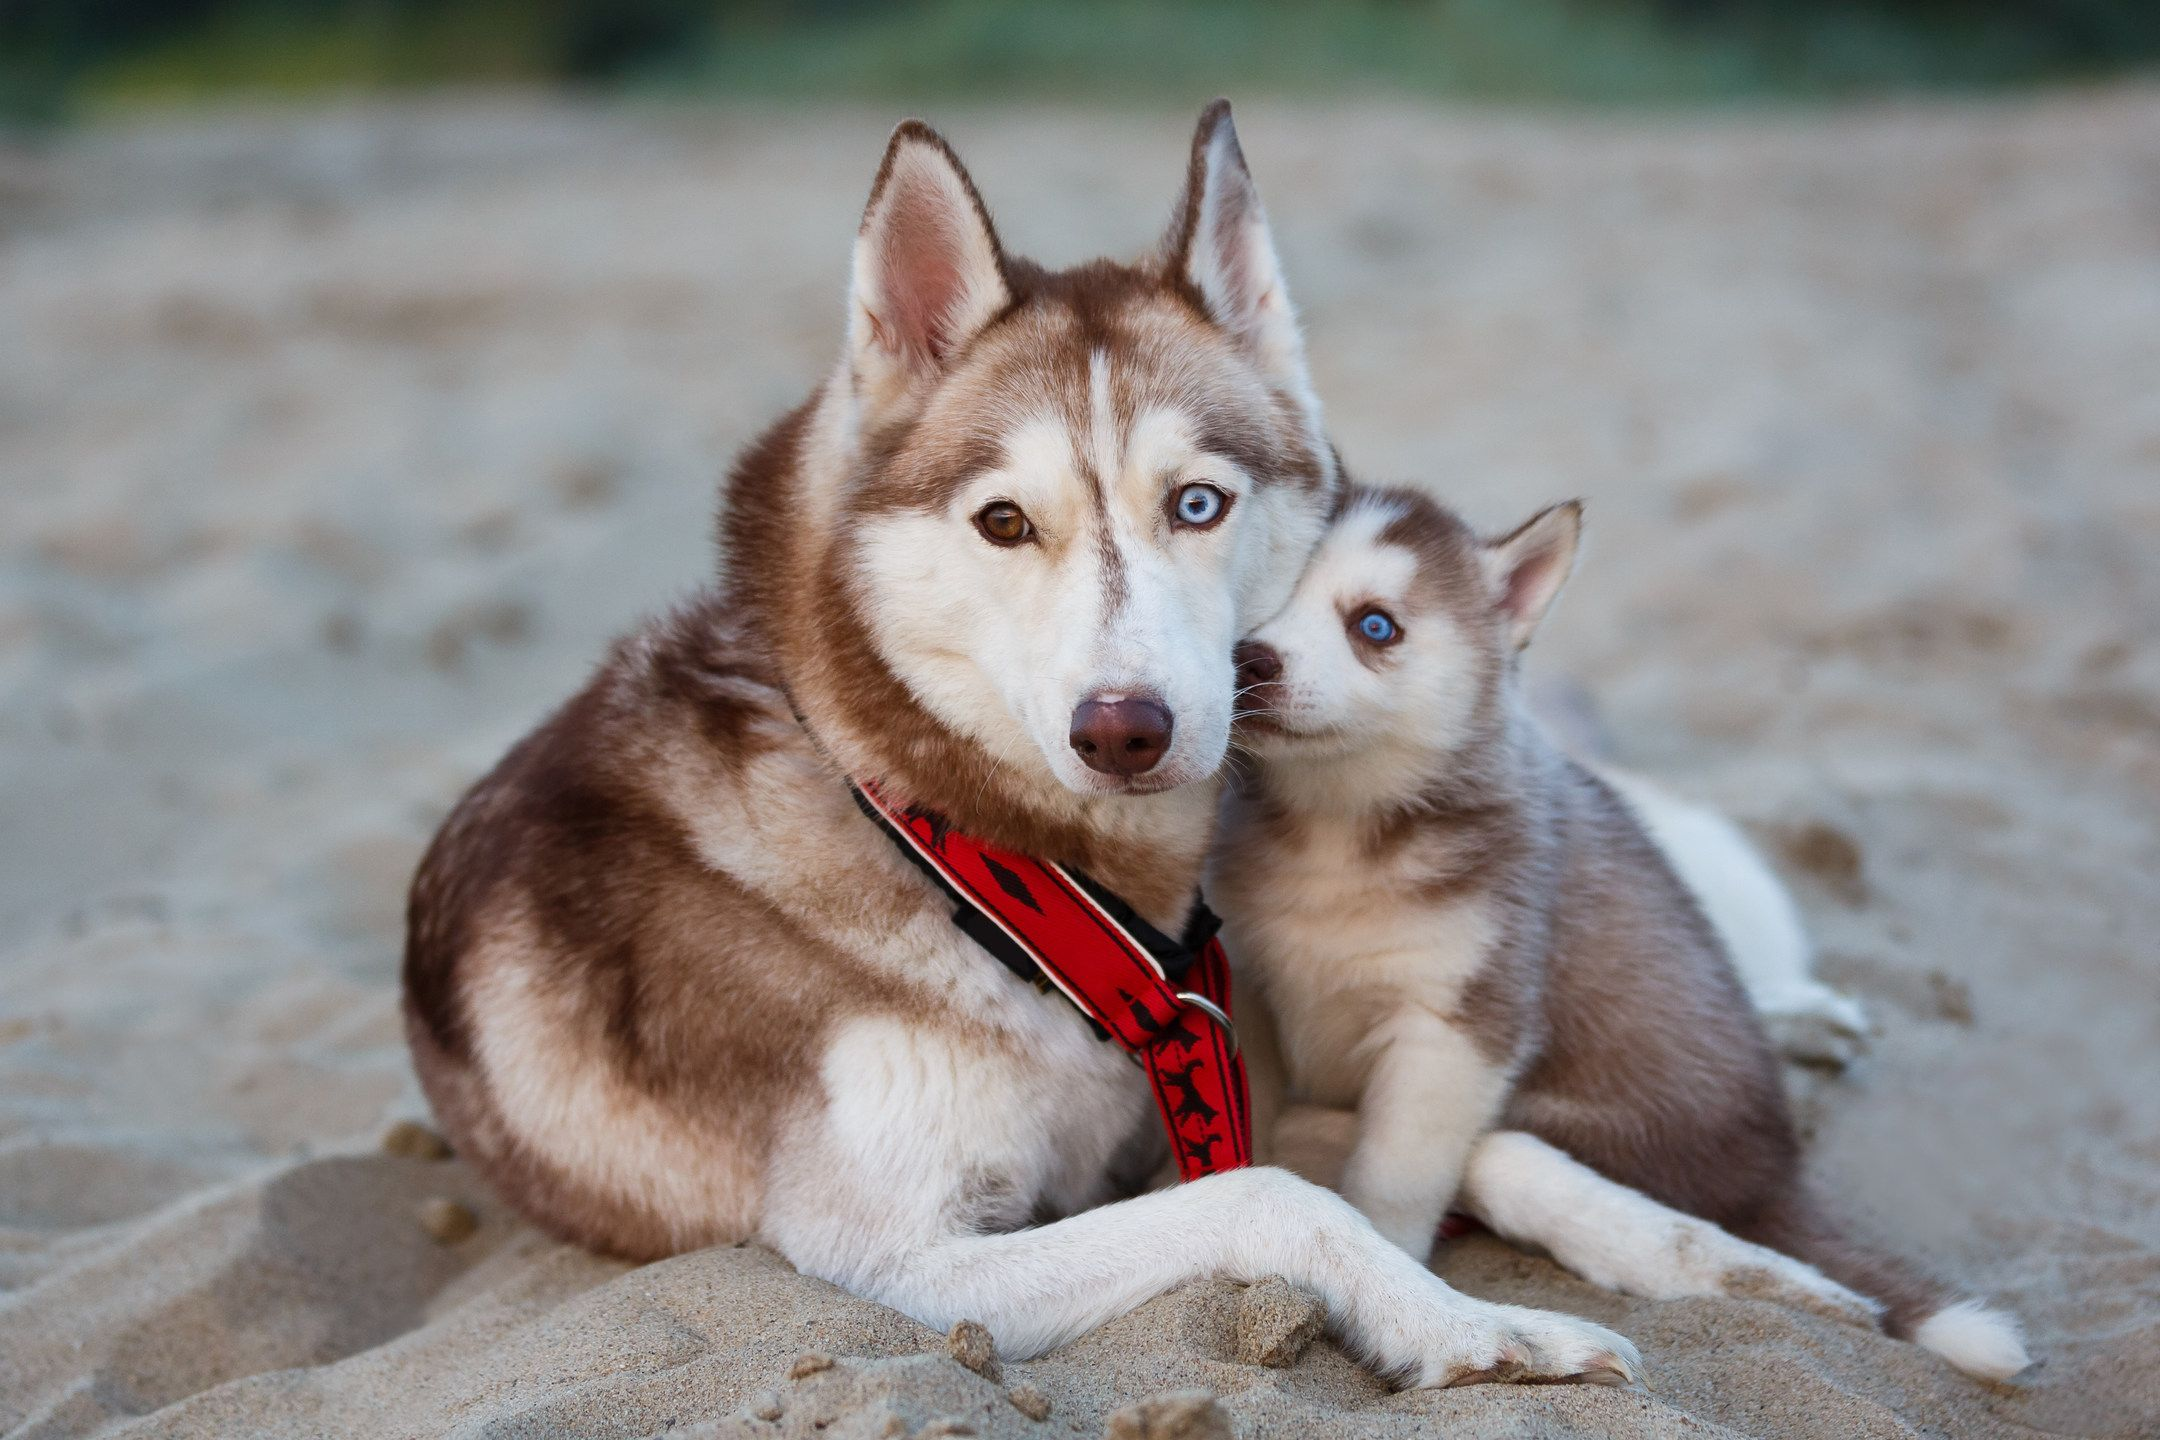 Coat Color Combinations The Breed Has Several Coat Color Combinations They Include Agouti Pure White White And Grey White Husky Siberian Husky Husky Dogs